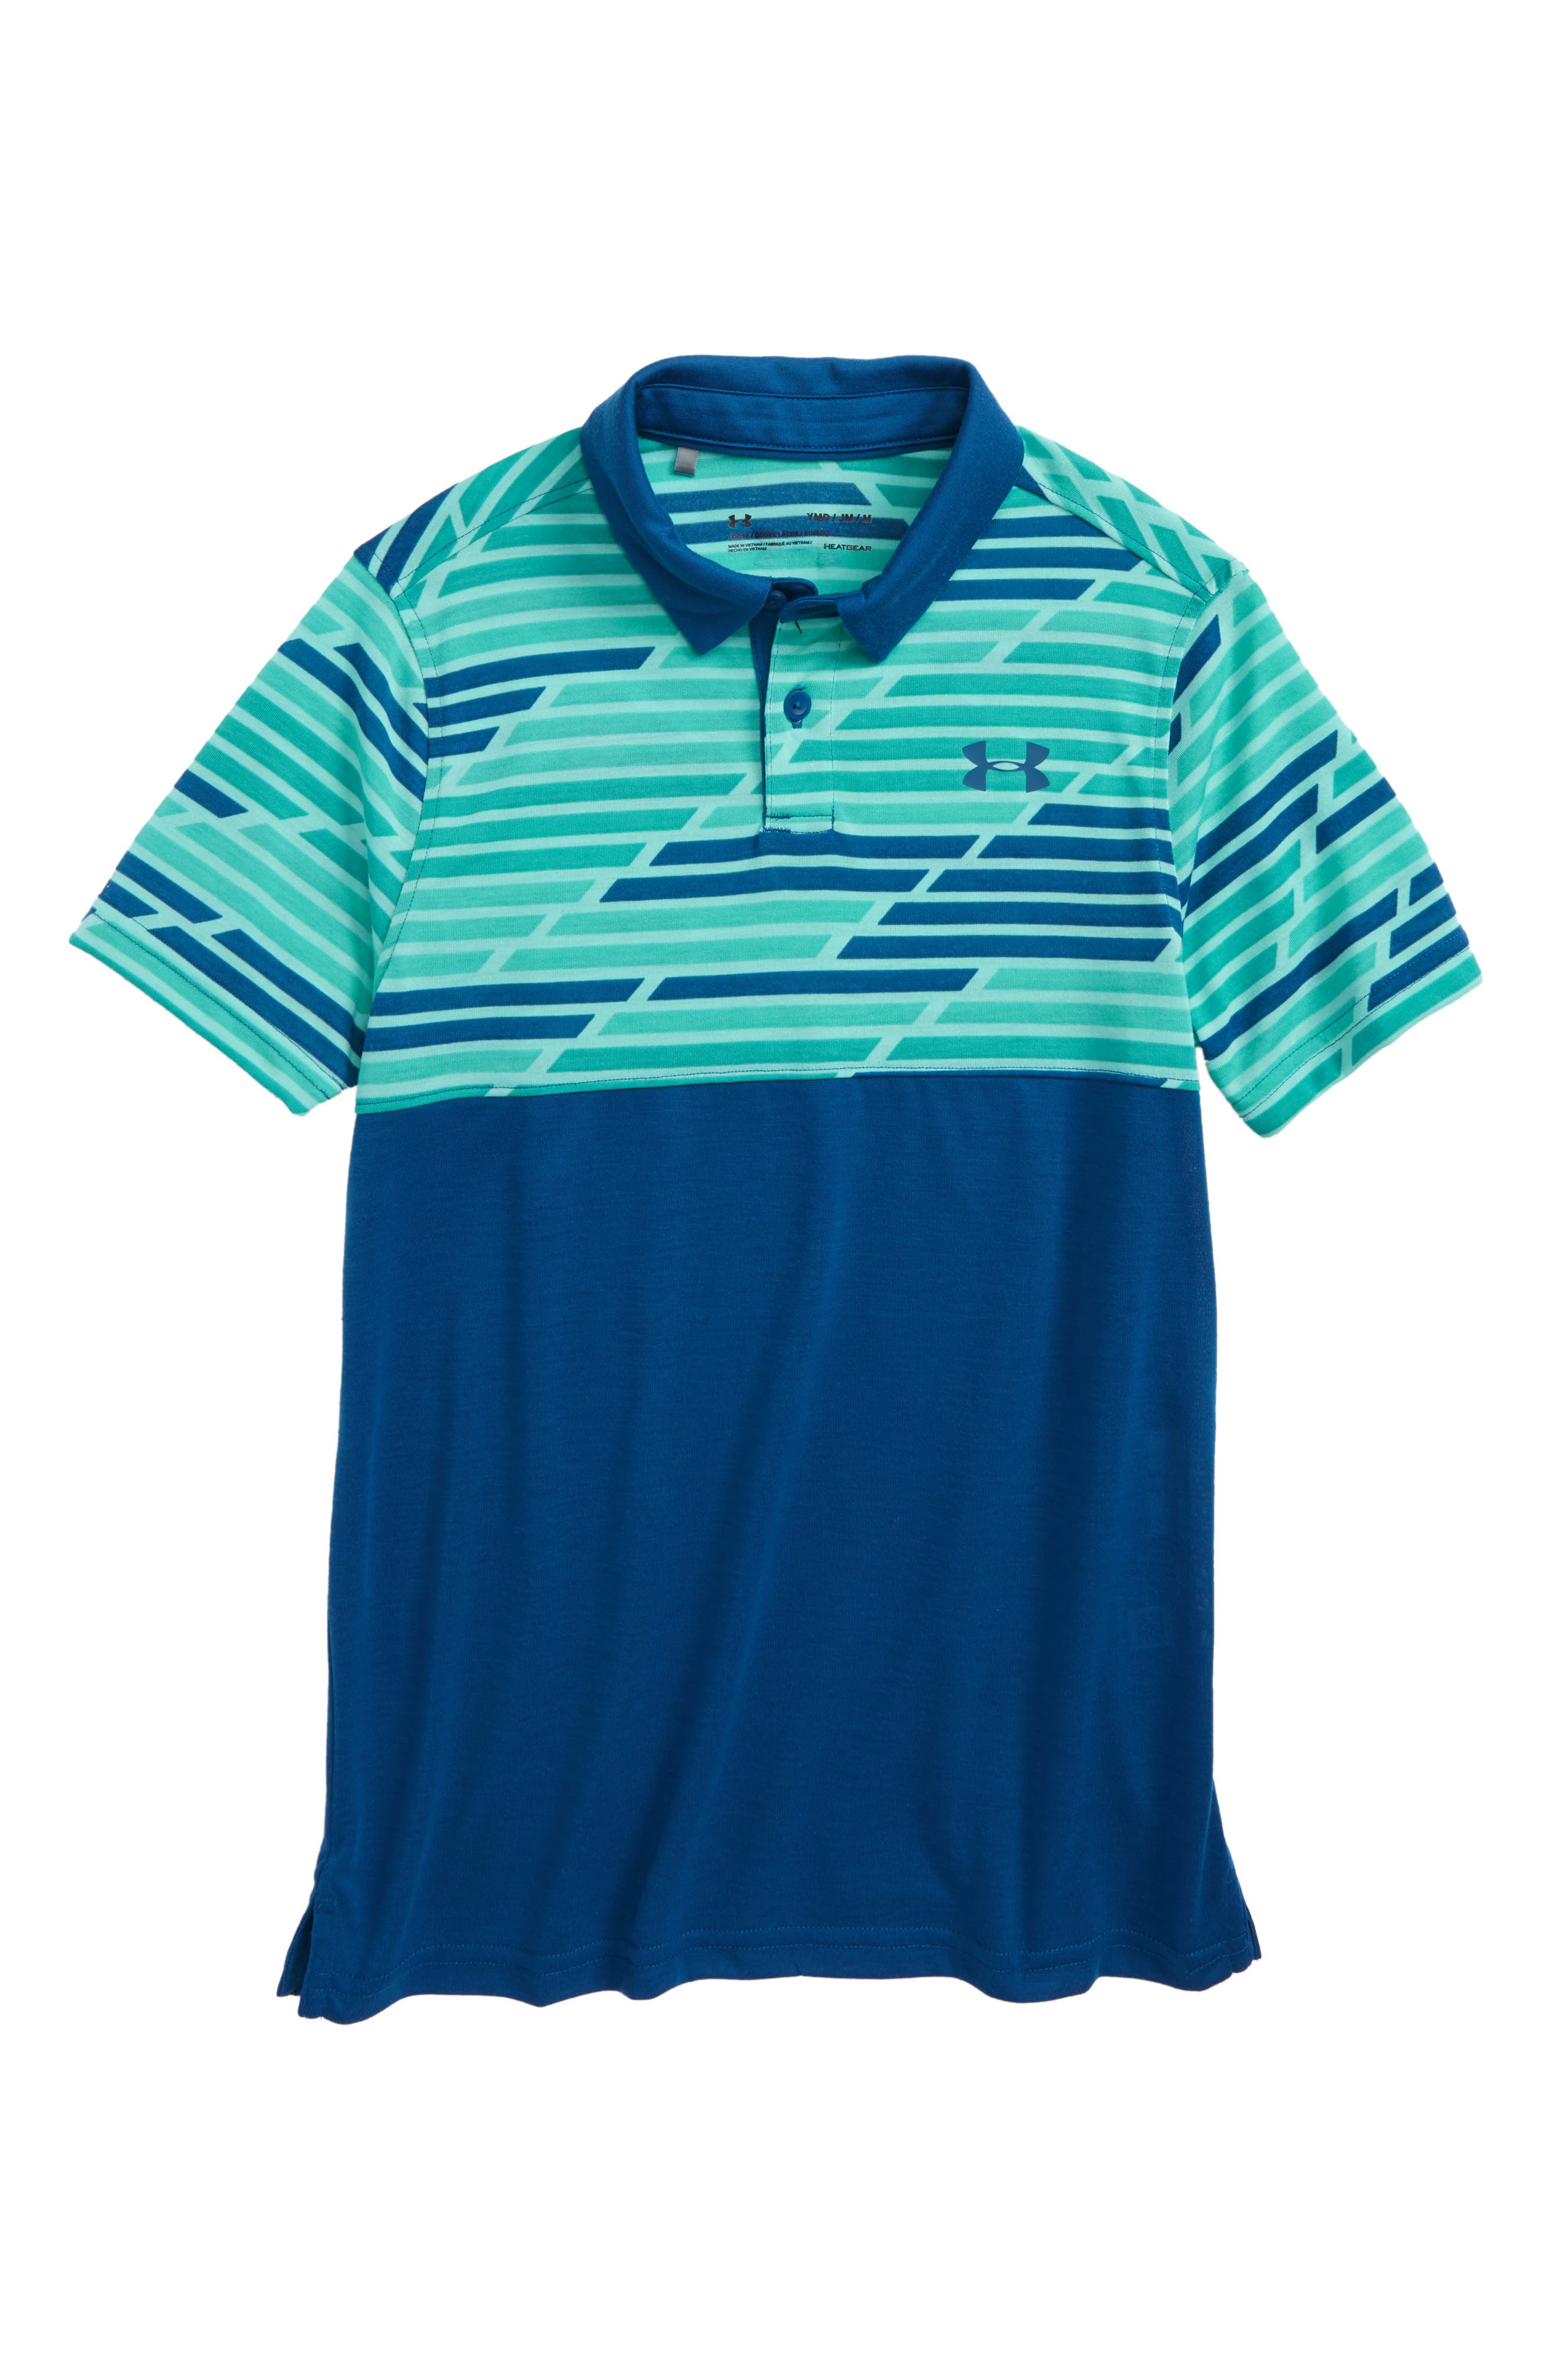 Threadborne HeatGear<sup>®</sup> Polo,                         Main,                         color, Teal Punch/ Moroccan Blue